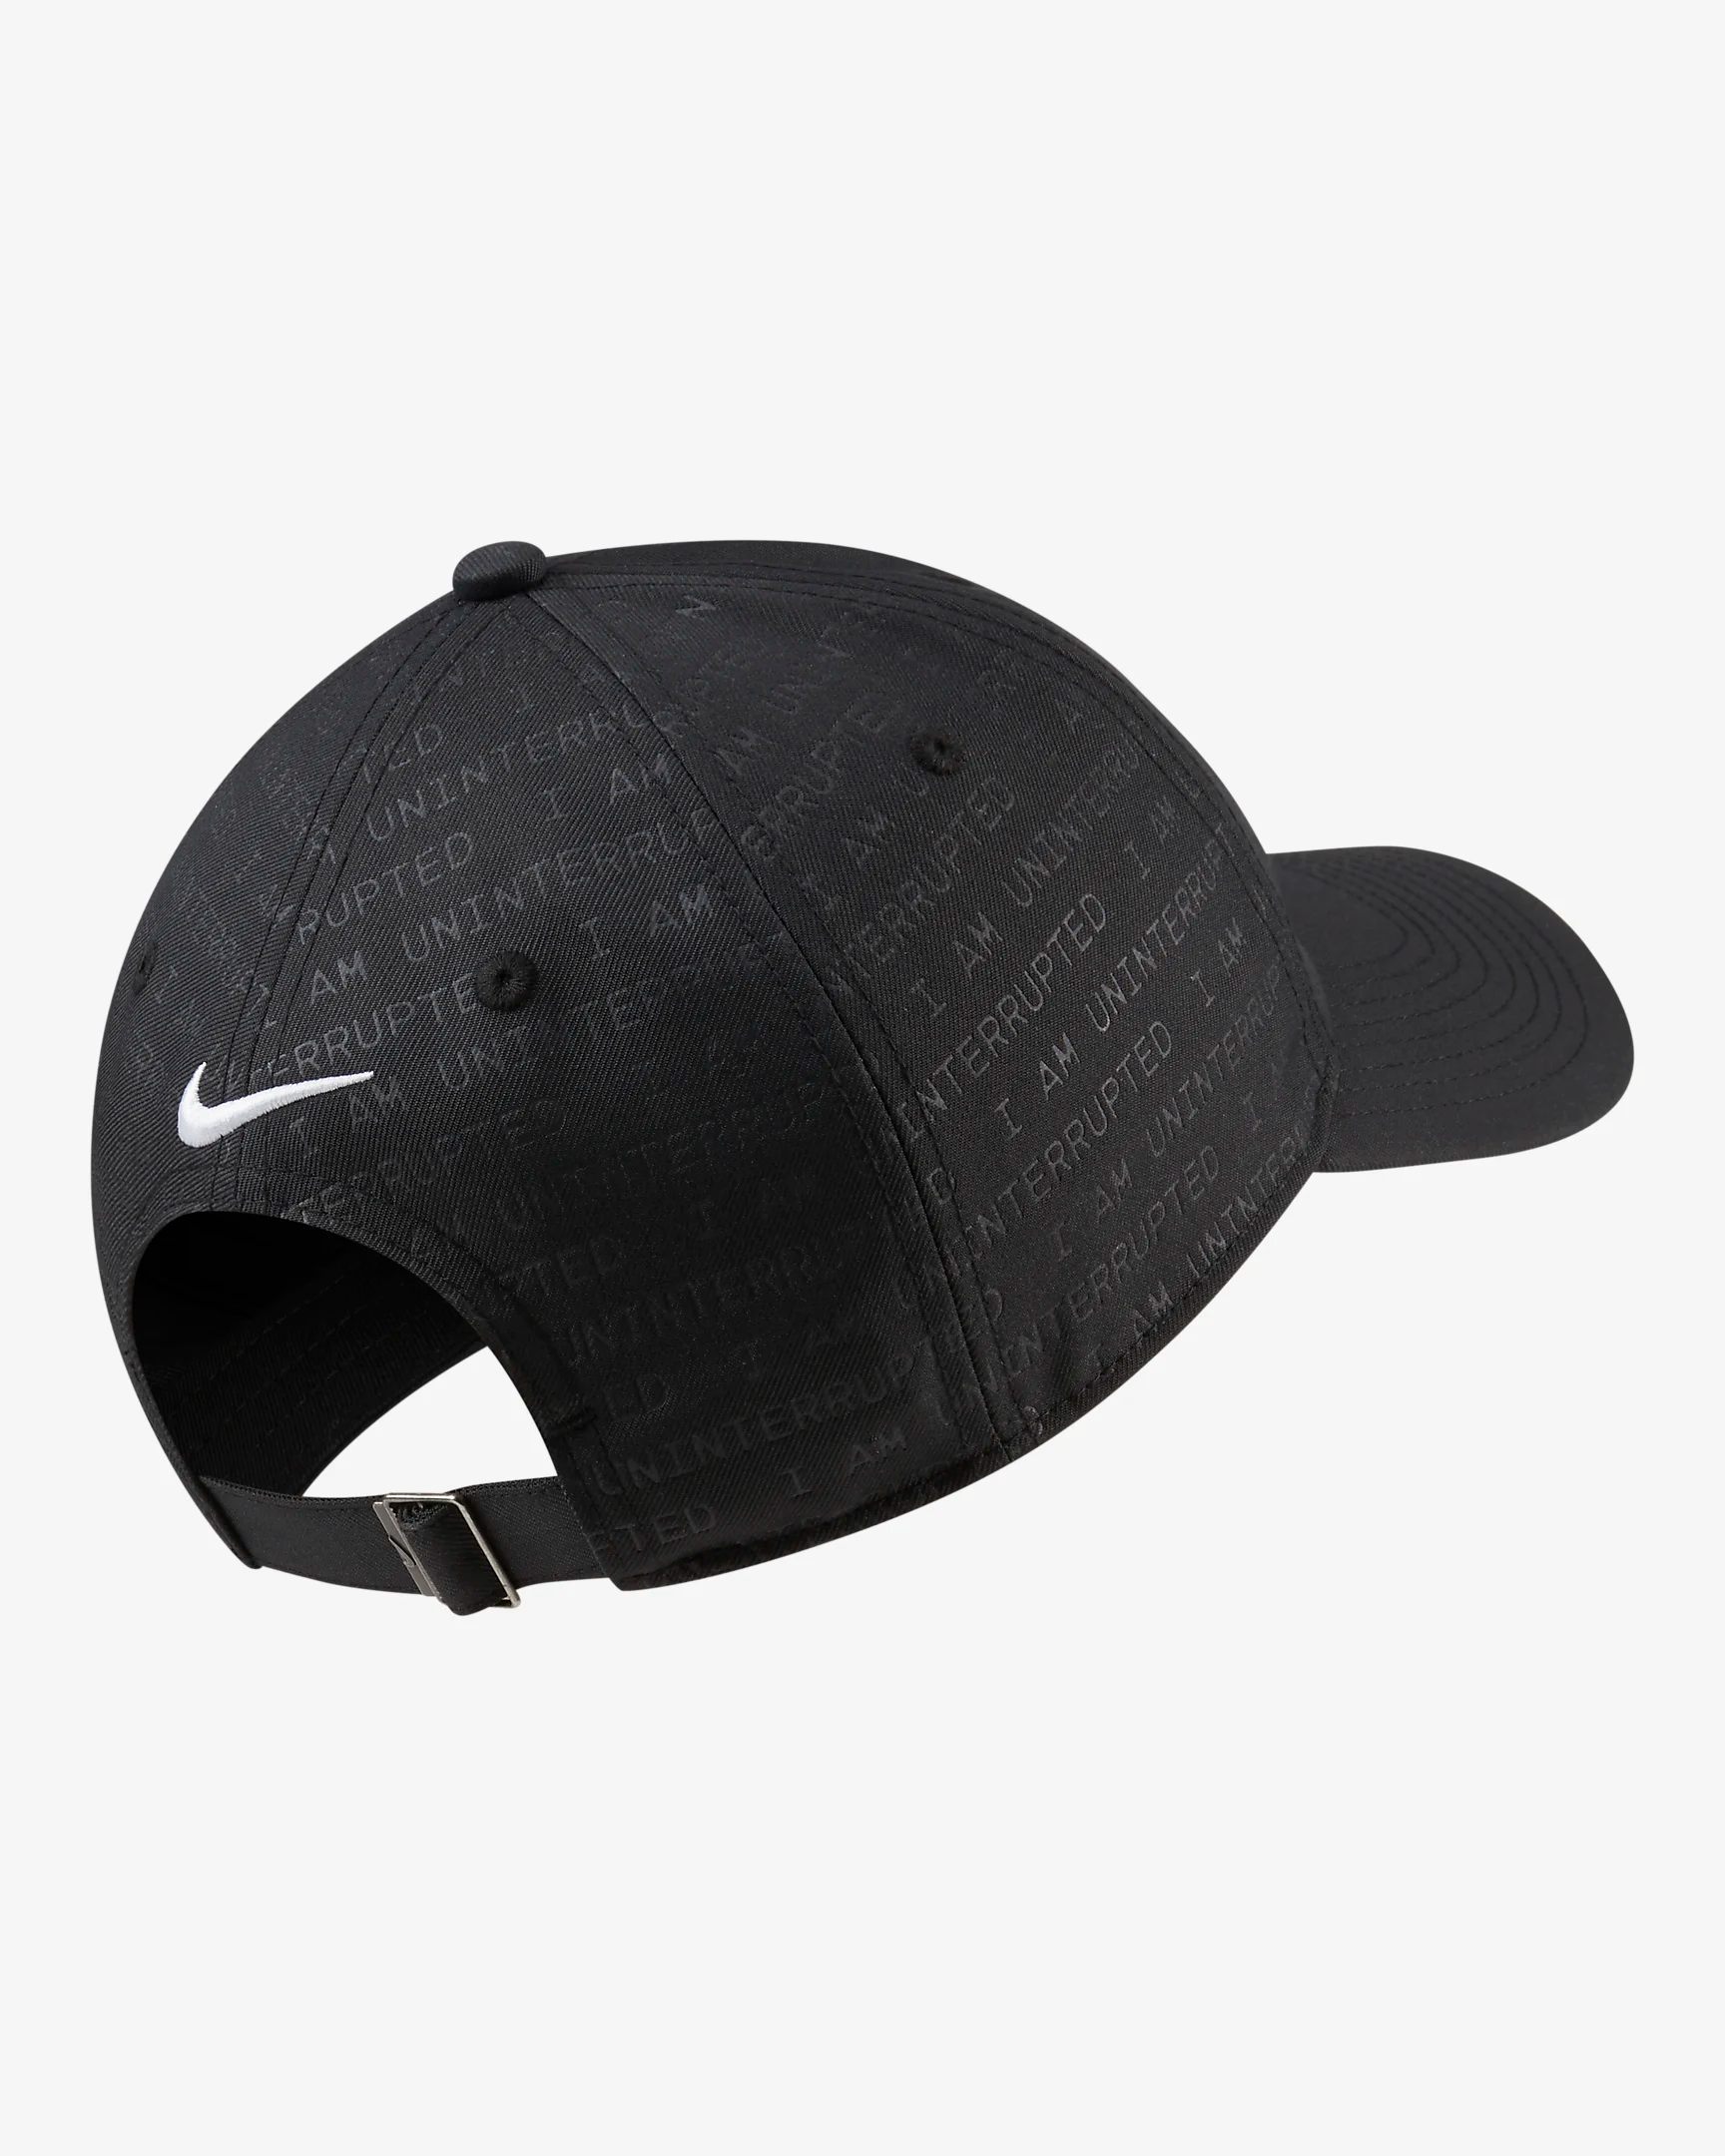 heritage86-more-than-an-athlete-adjustable-hat-7hcnz8 (1).png